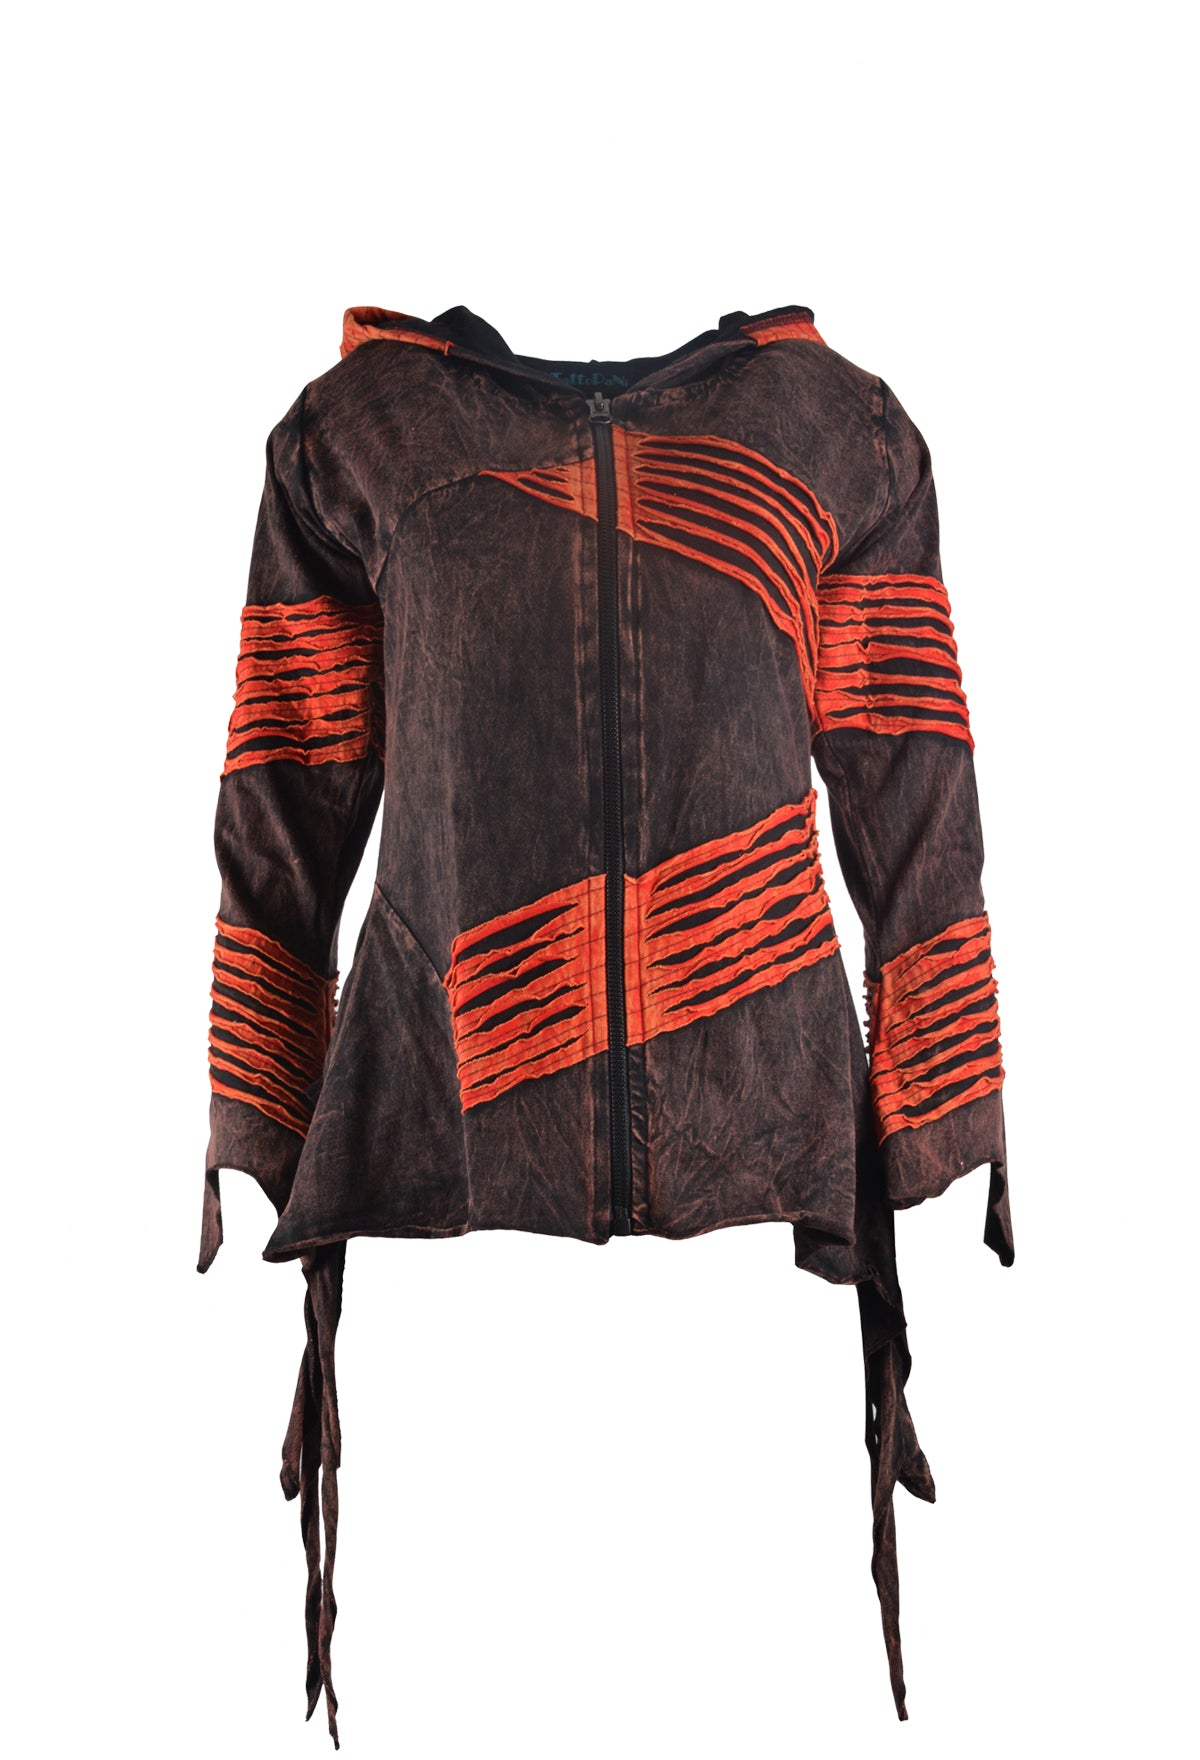 Ladies Long Sleeved Multi Colored Hoodies Jumper with Razor Cut Design and Side Pockets - Craze Trade Limited